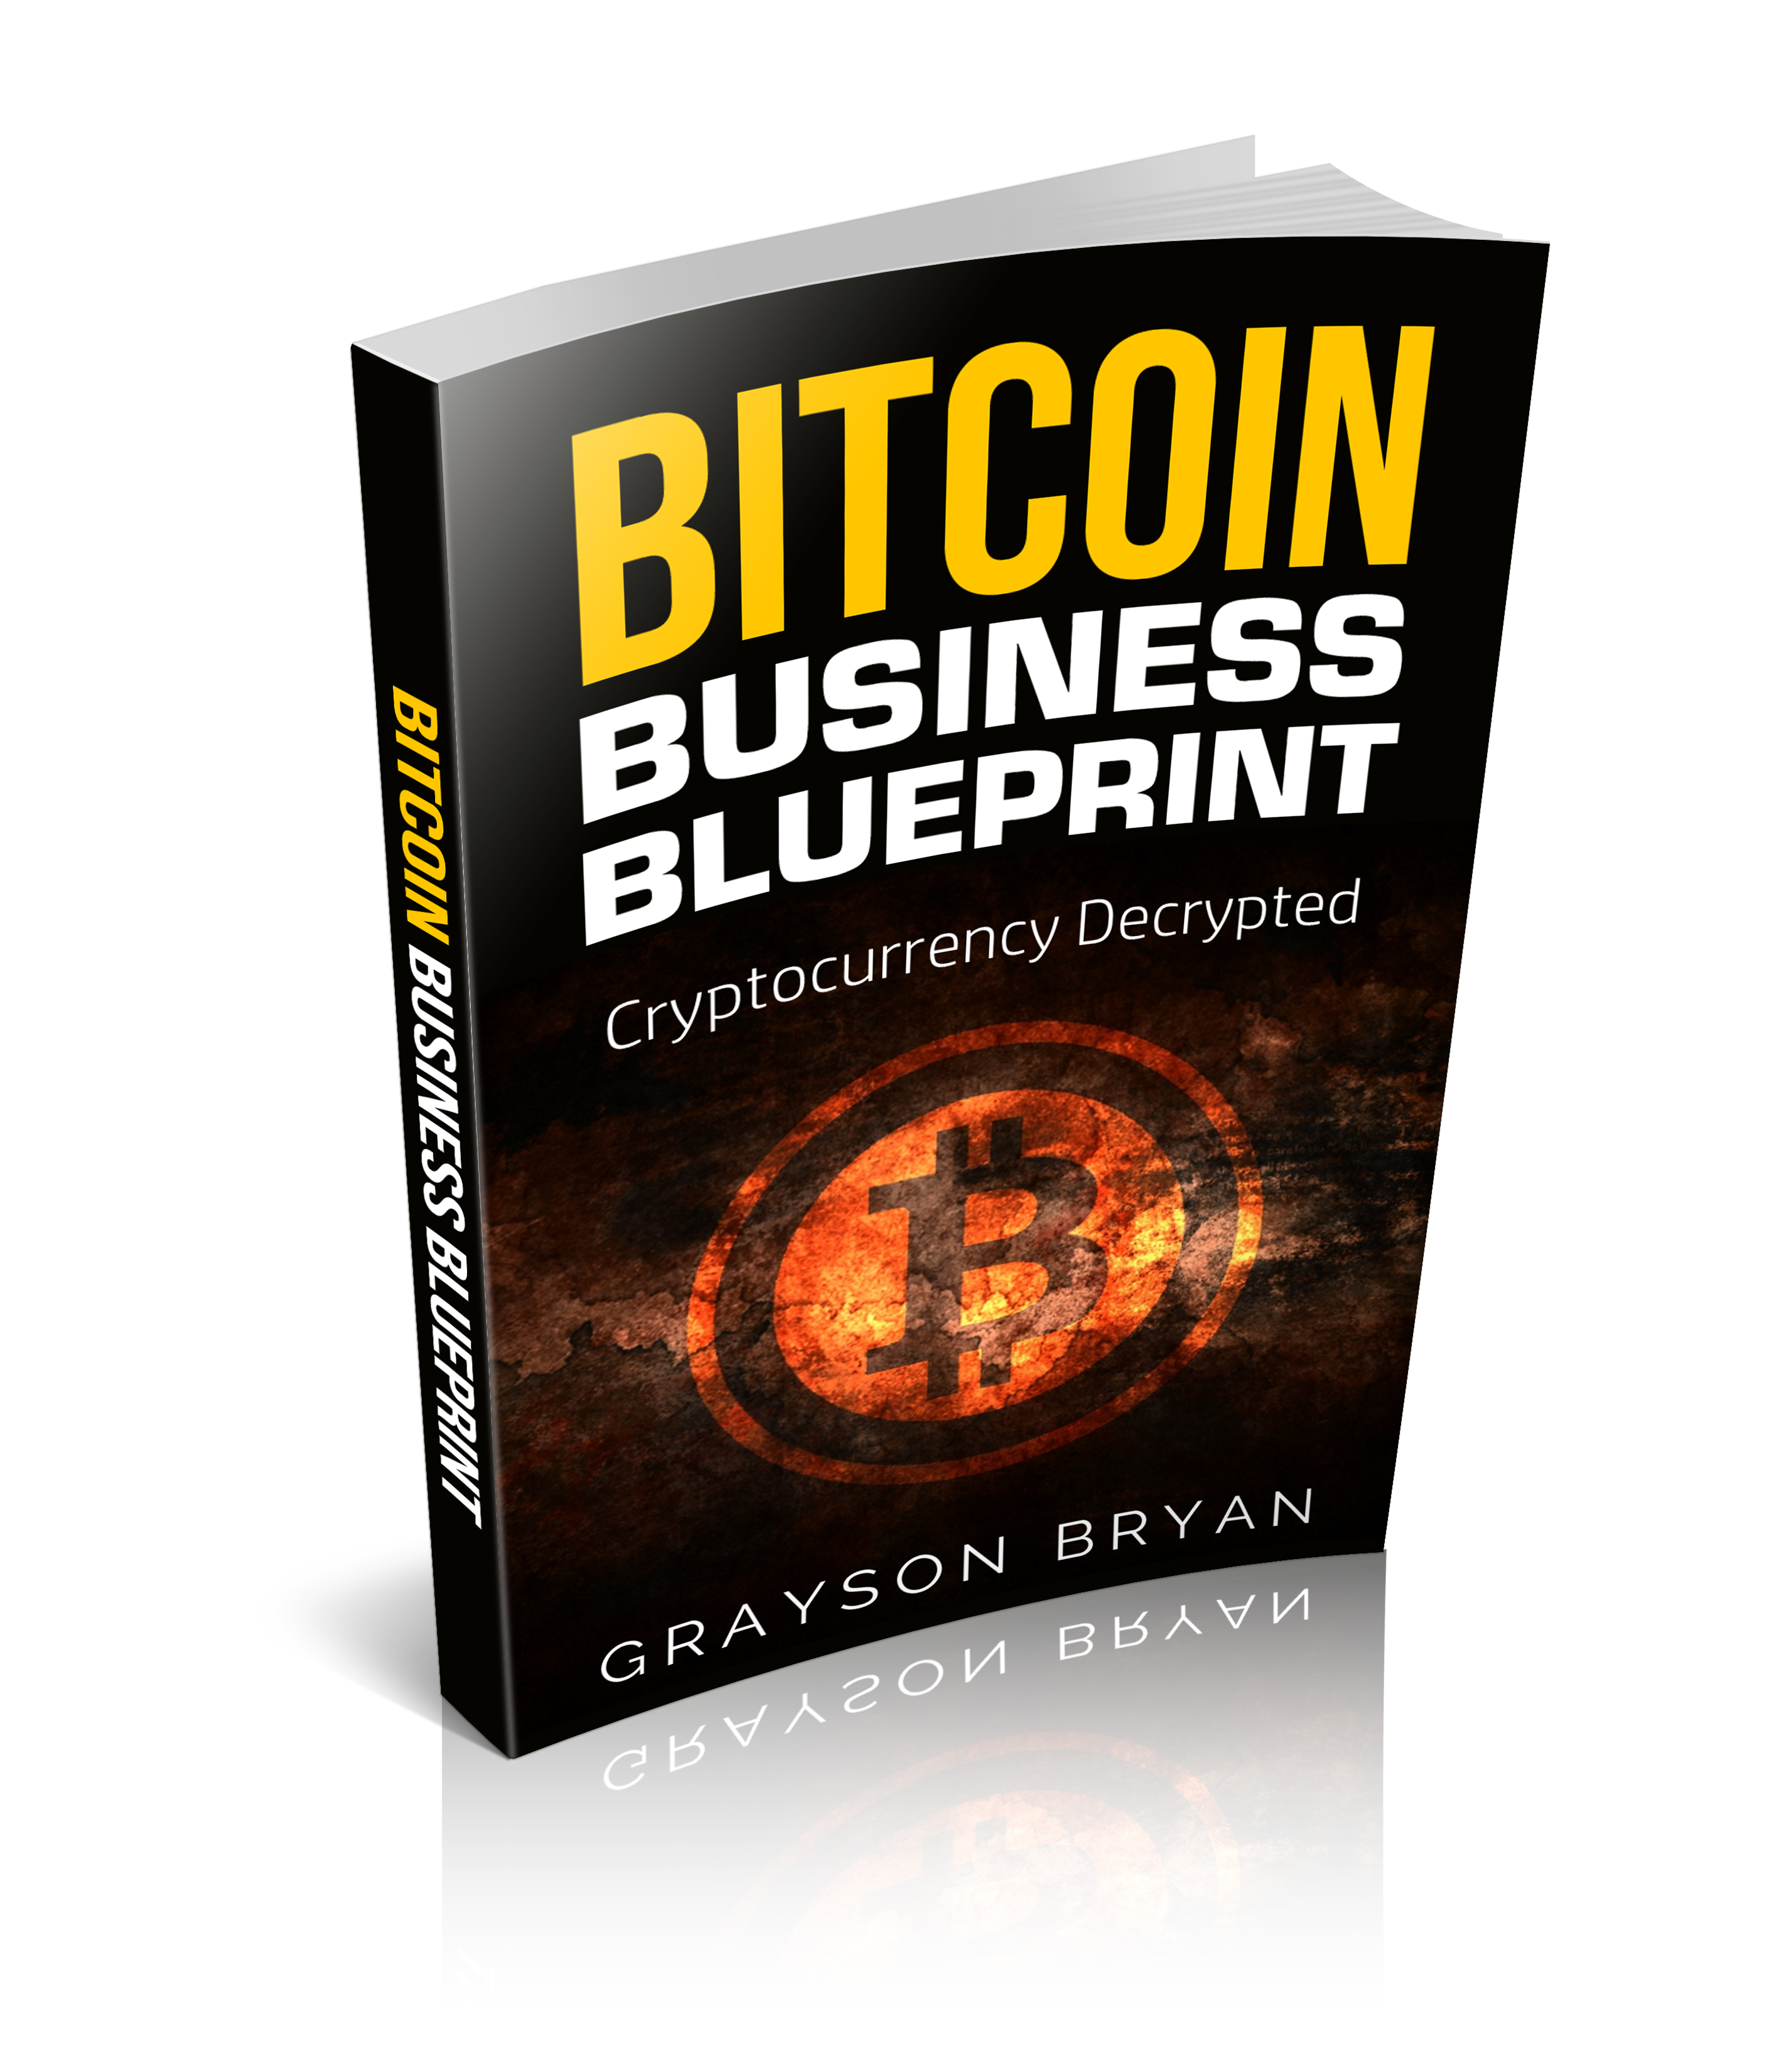 Bitcoin business blueprint grayson bryan if for whatever reason youre not satisfied with this product or feel it wasnt of any use to you simply contact support and well promptly issue a refund malvernweather Choice Image